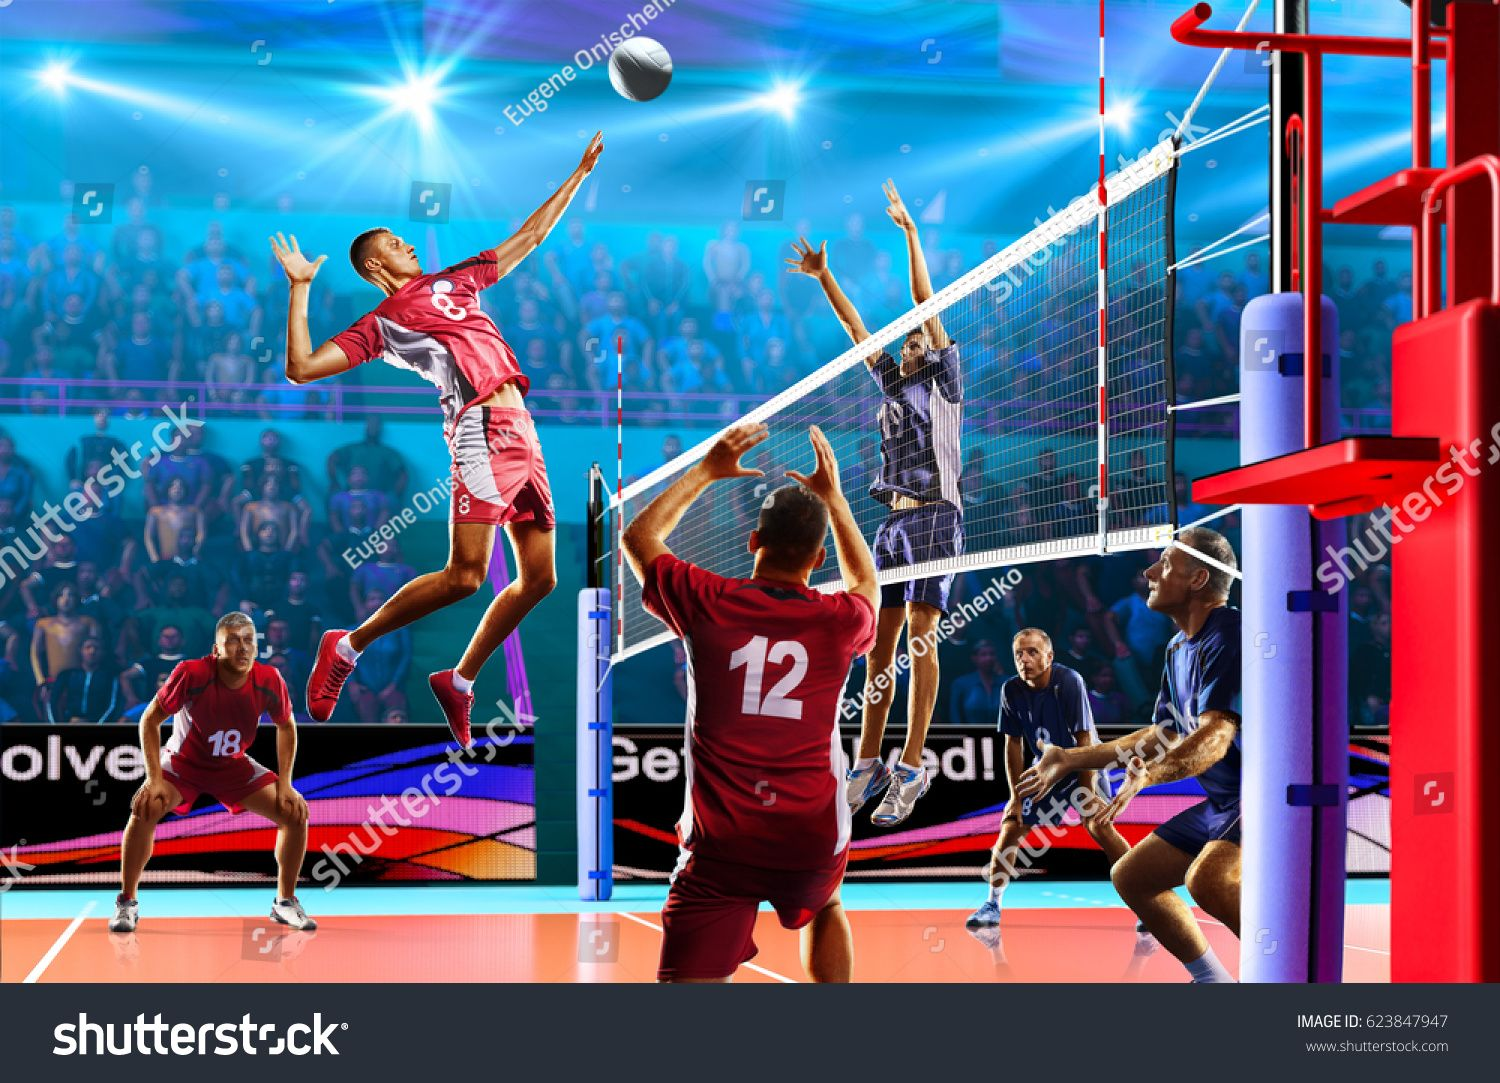 Professional Volleyball Players In Action On The Grand Court Ad Sponsored Players Volleybal Professional Volleyball Players Volleyball Players Volleyball